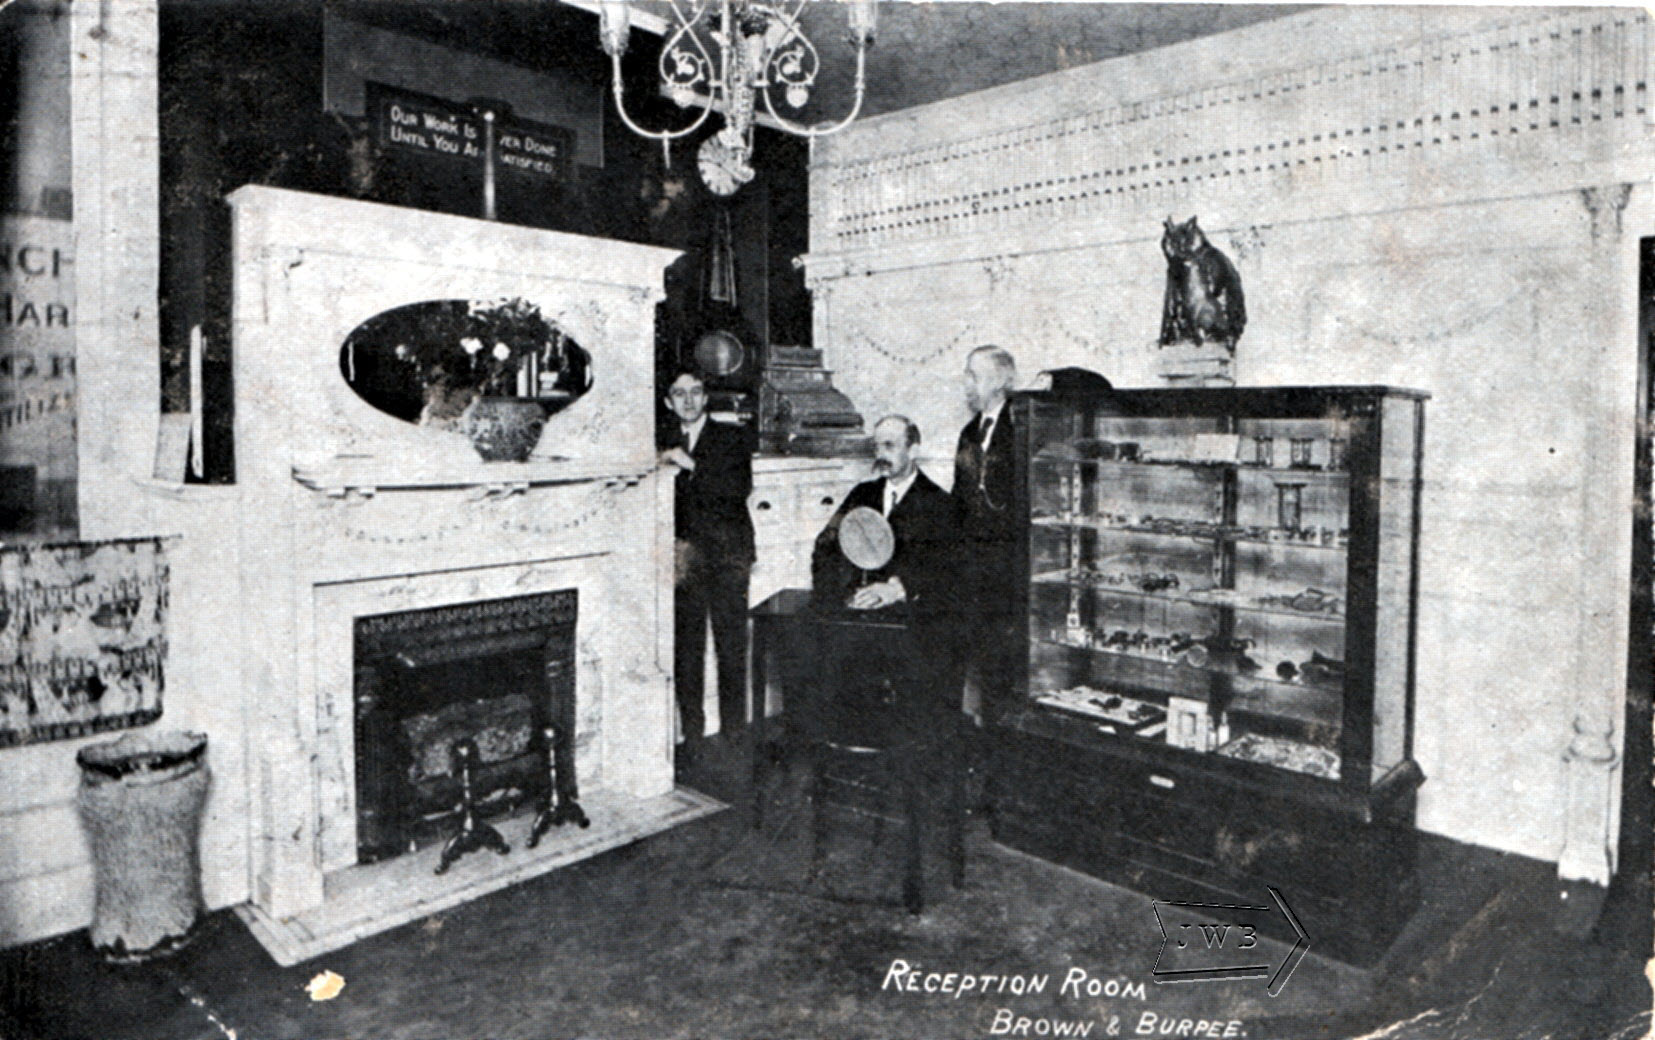 Office of Brown & Burpee, Optometrists, 940 Elm Street, Manchester NH